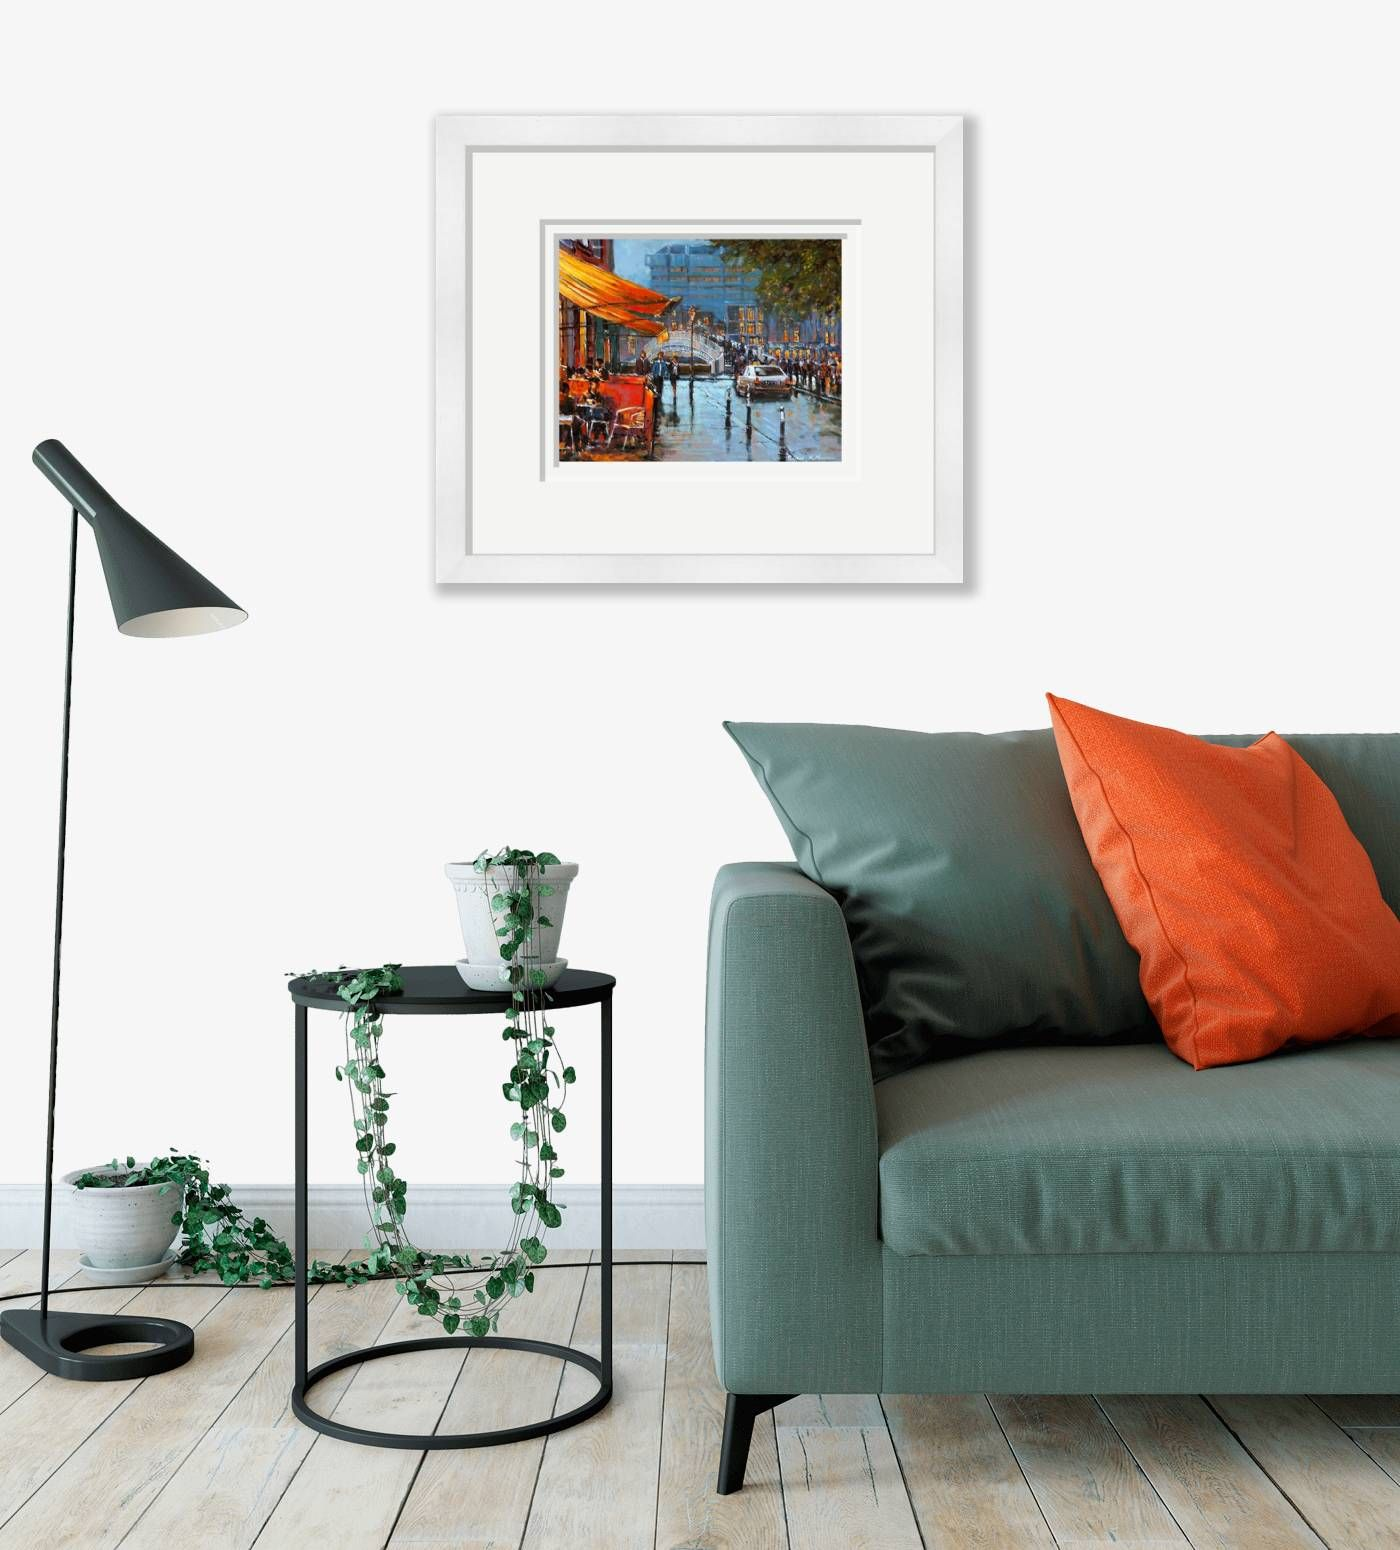 Large framed - Liffey Street View - 324 by Chris McMorrow